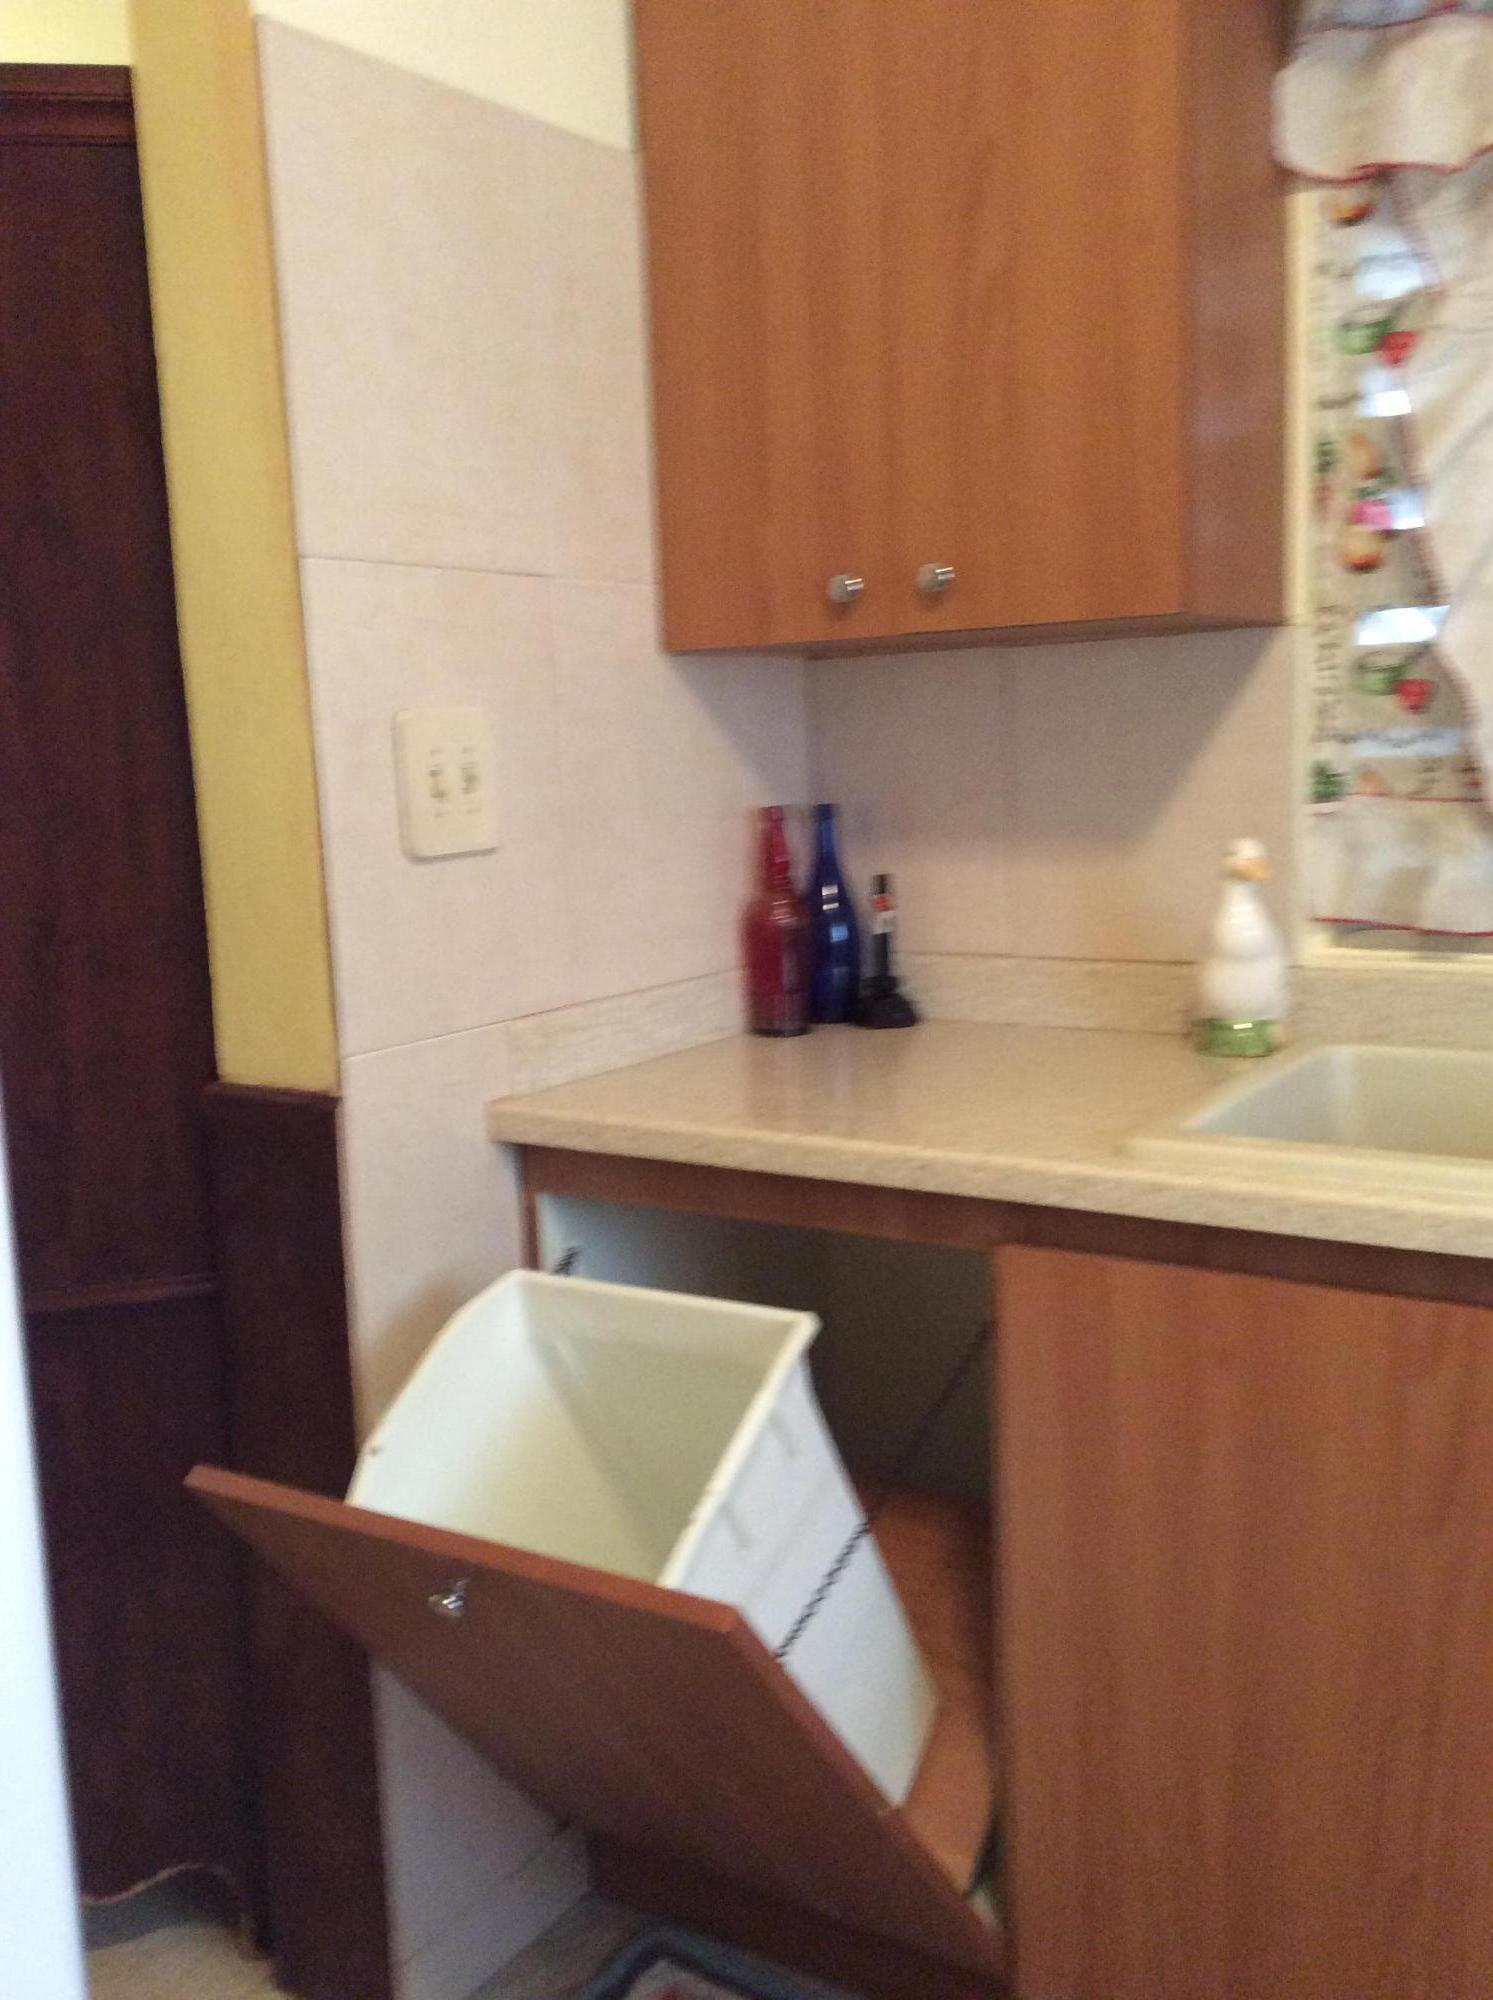 Trash recepticle in kitchen